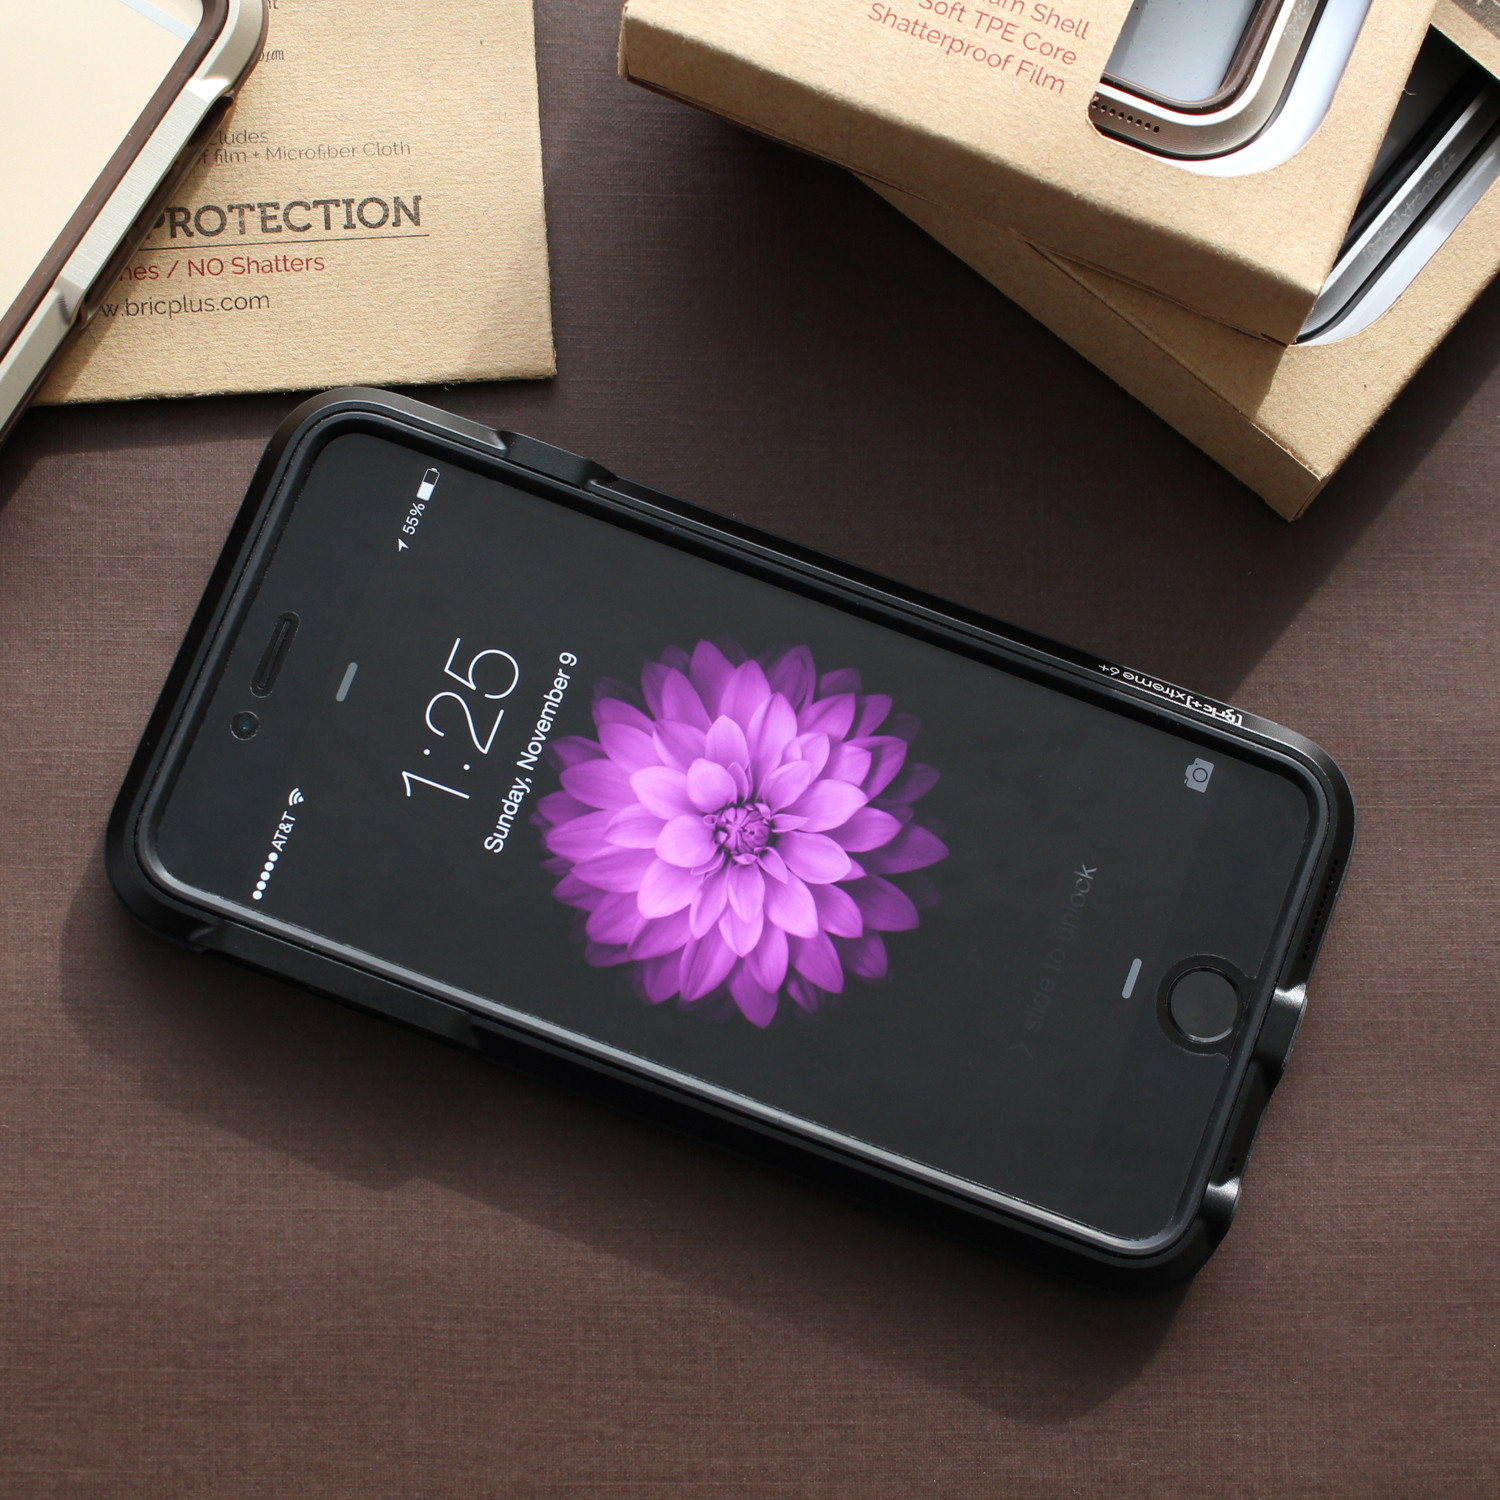 sneakers for cheap 6e9ab 1fee4 iPhone 6 Case // Charcoal Grey + Black - BRICWAVE - Touch of Modern